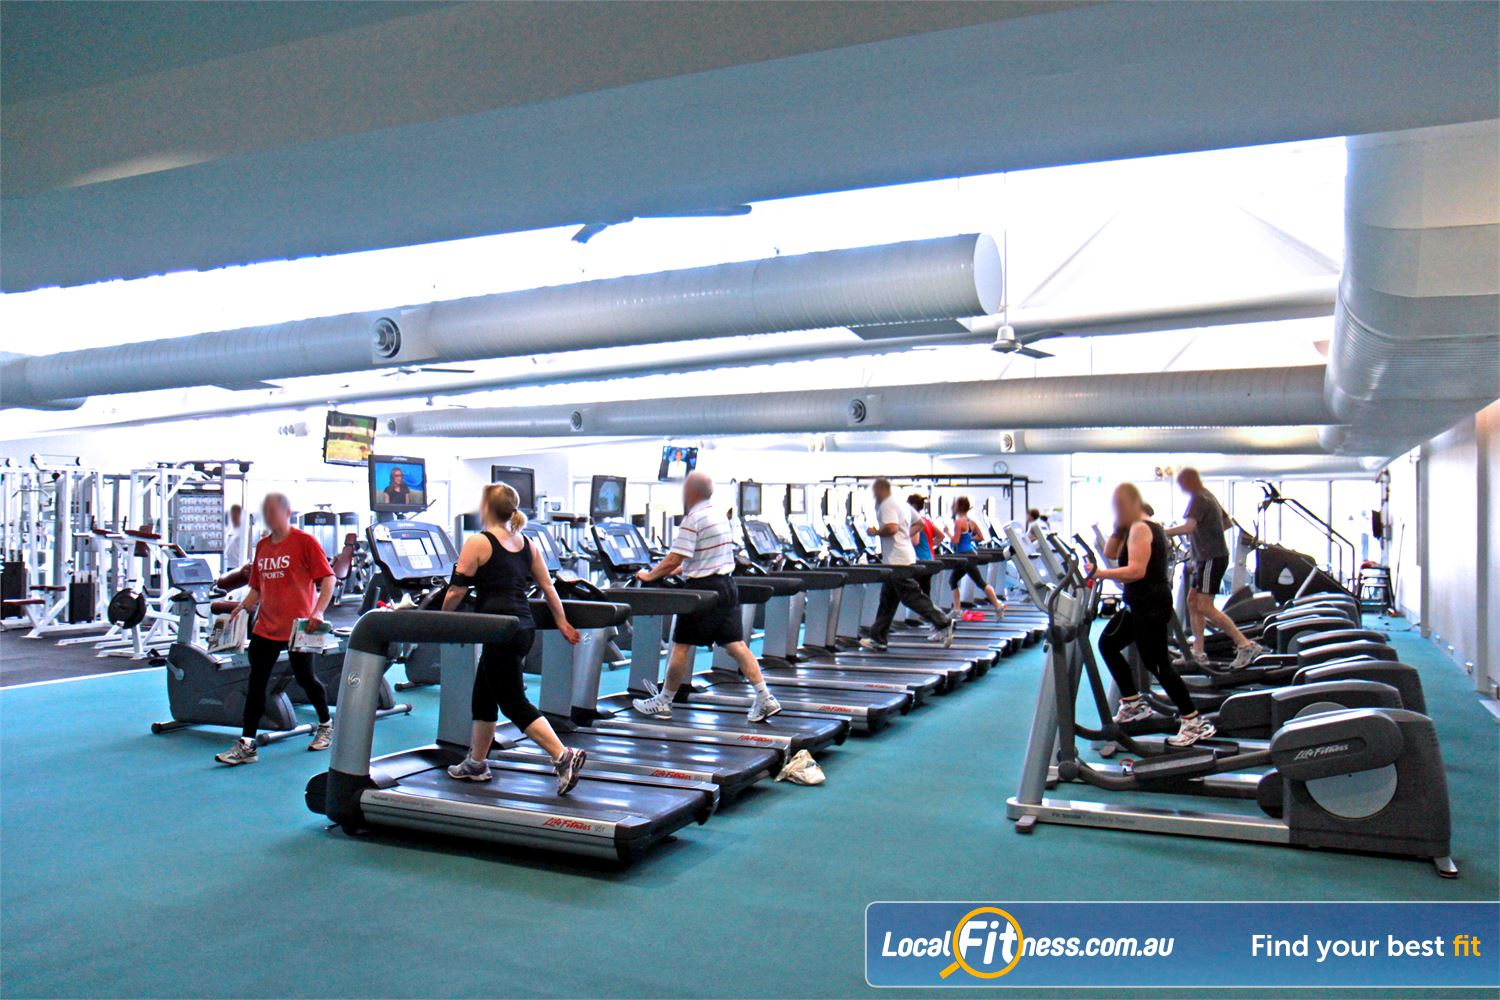 Ascot Vale Leisure Centre Near Maribyrnong Our Ascot Vale gym offers an extensive selection of cardio equipment to minimize wait time.